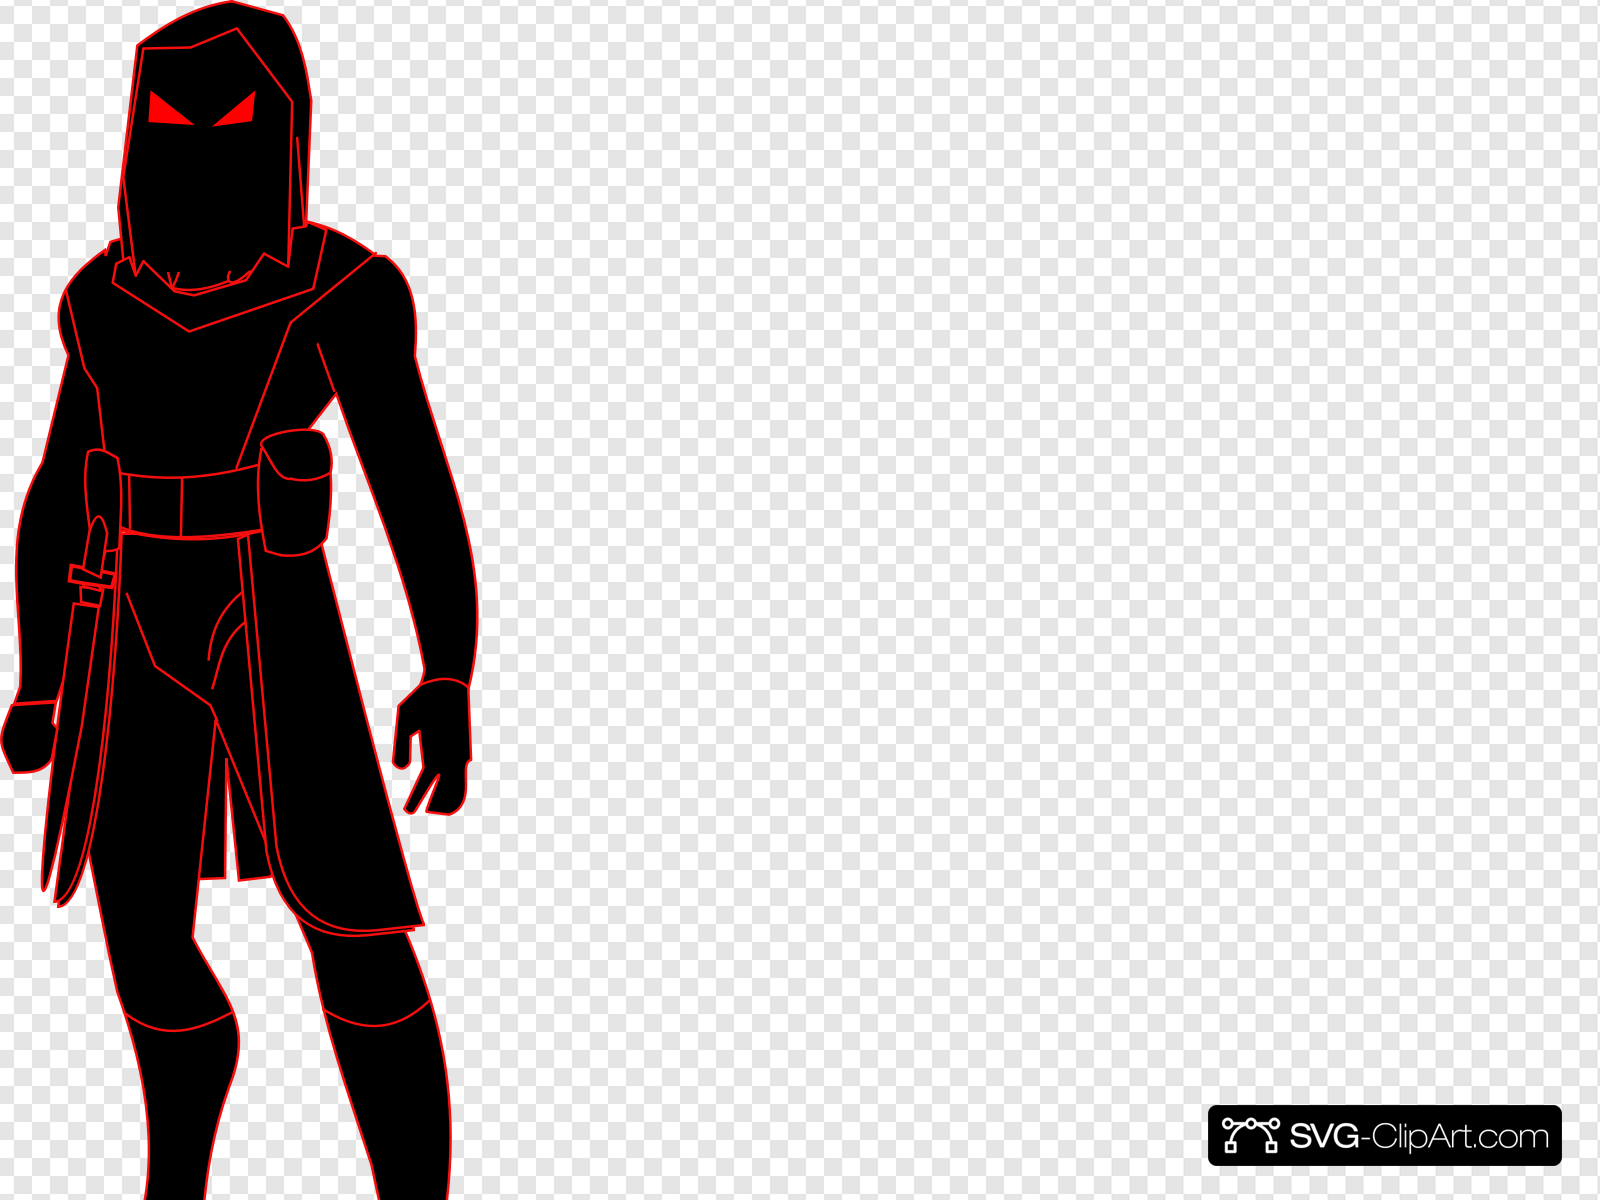 Shadow Man Clip art, Icon and SVG.